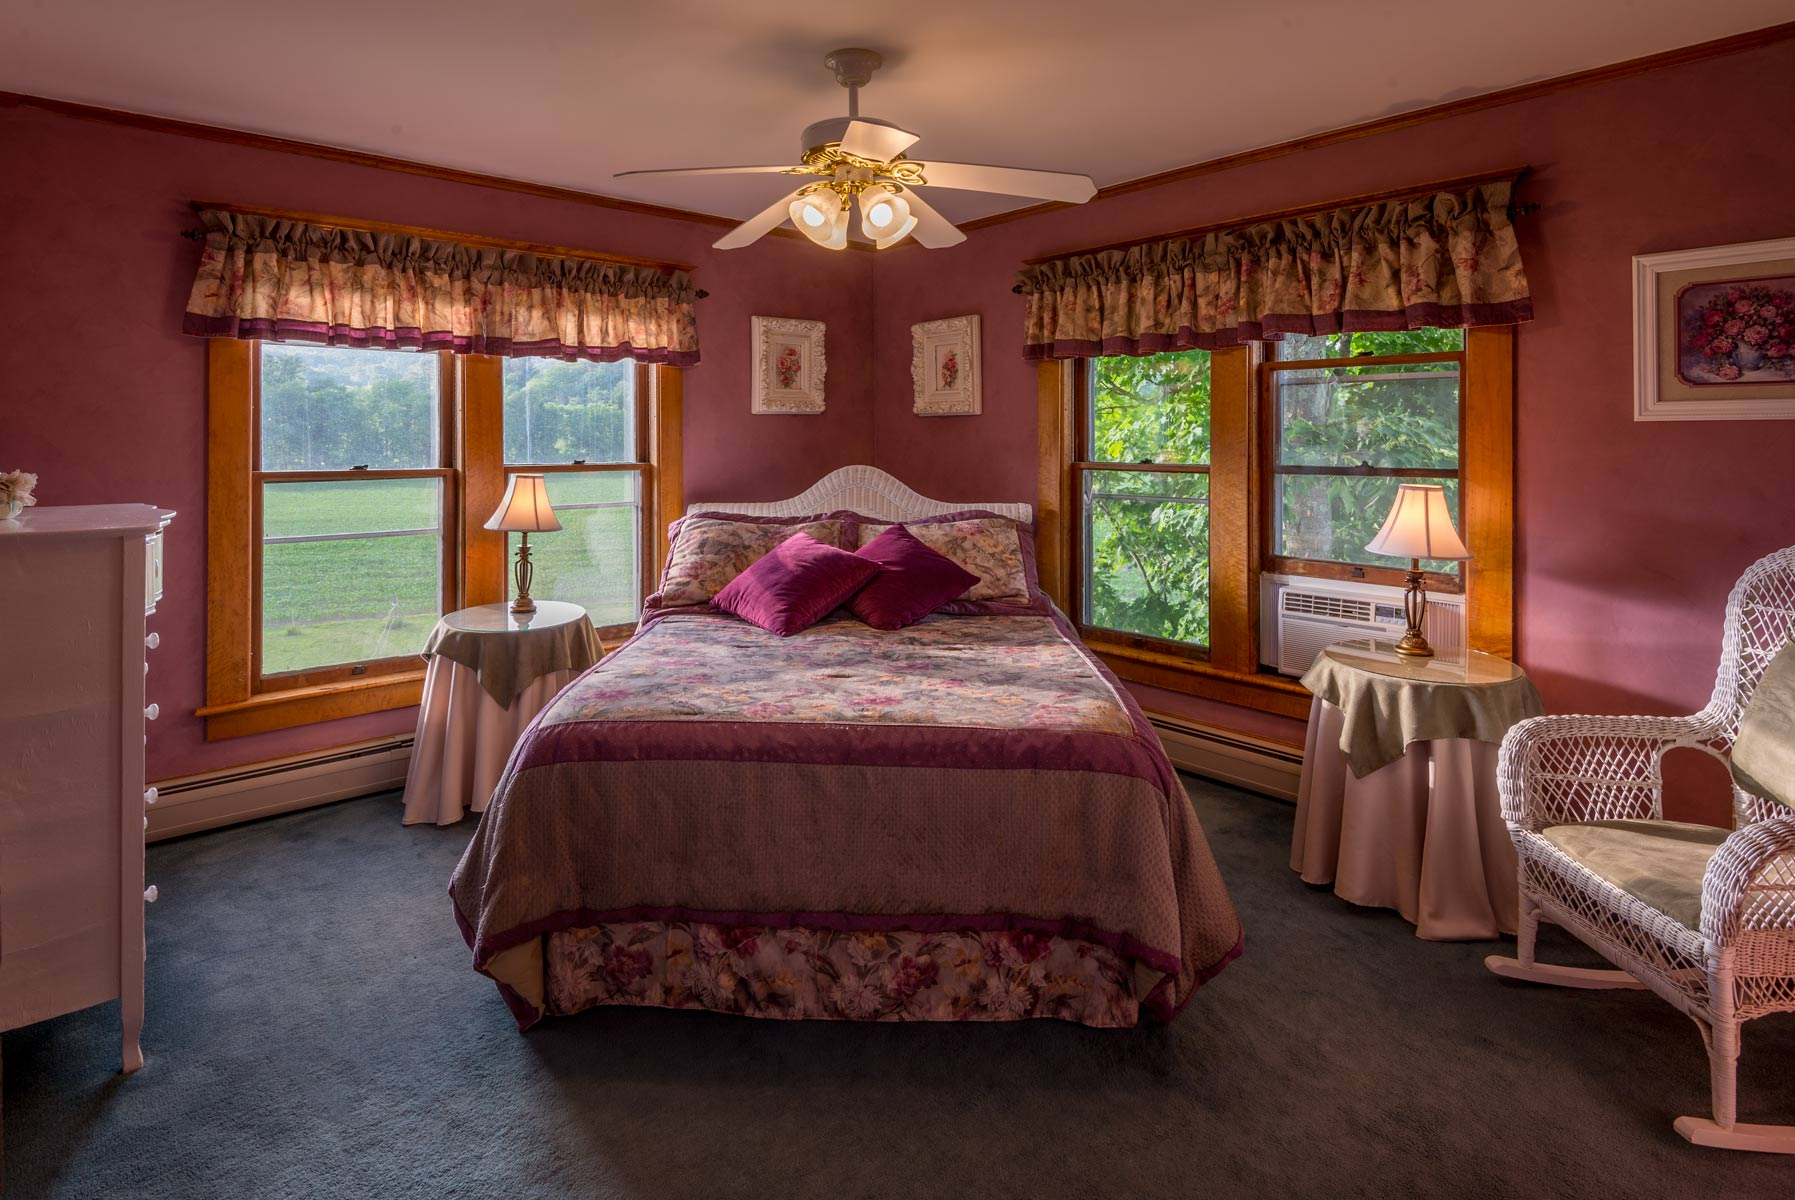 The Lucy Alexander Room